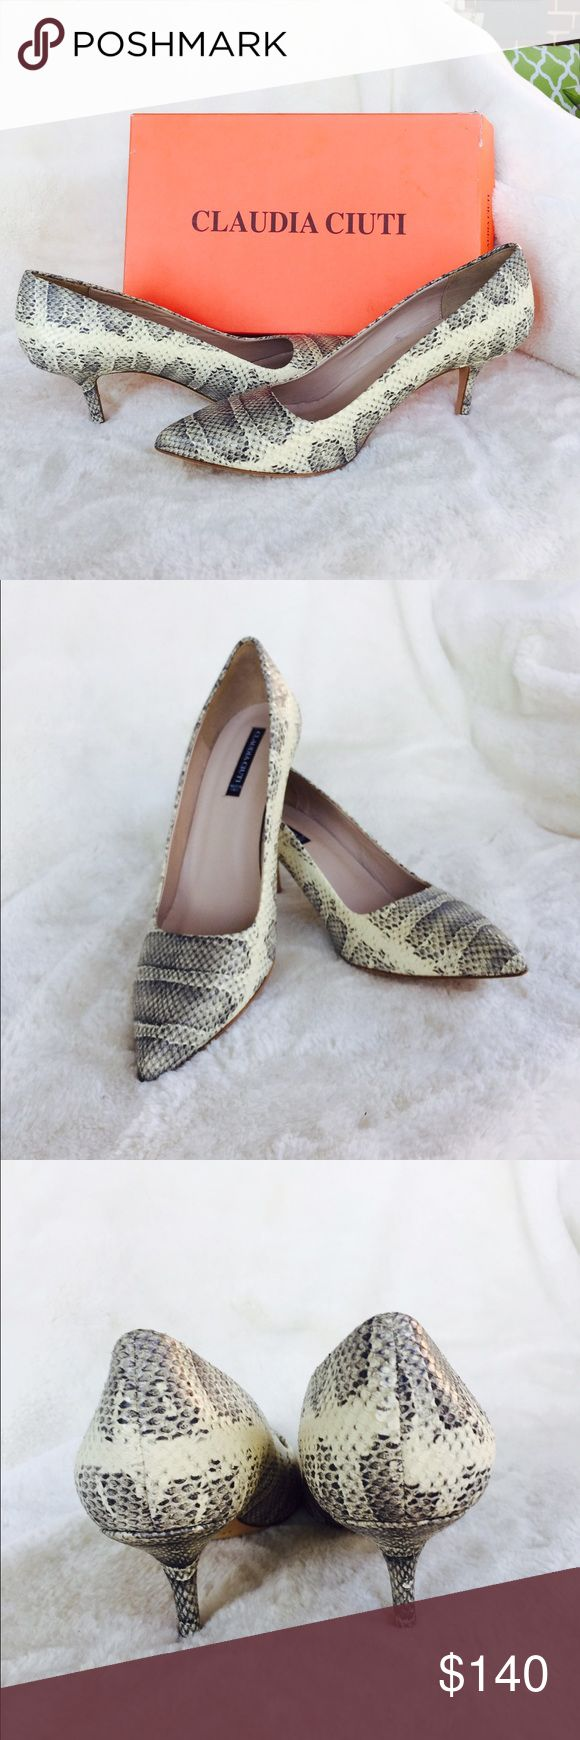 Claudia Ciuti Jade Roccia Ayers Pumps Super chic snakeskin pumps by Claudia Ciuti. These Italian made pumps definitely a head turner. Brand new with box. Size 9 narrow. Claudia Ciuti Shoes Heels